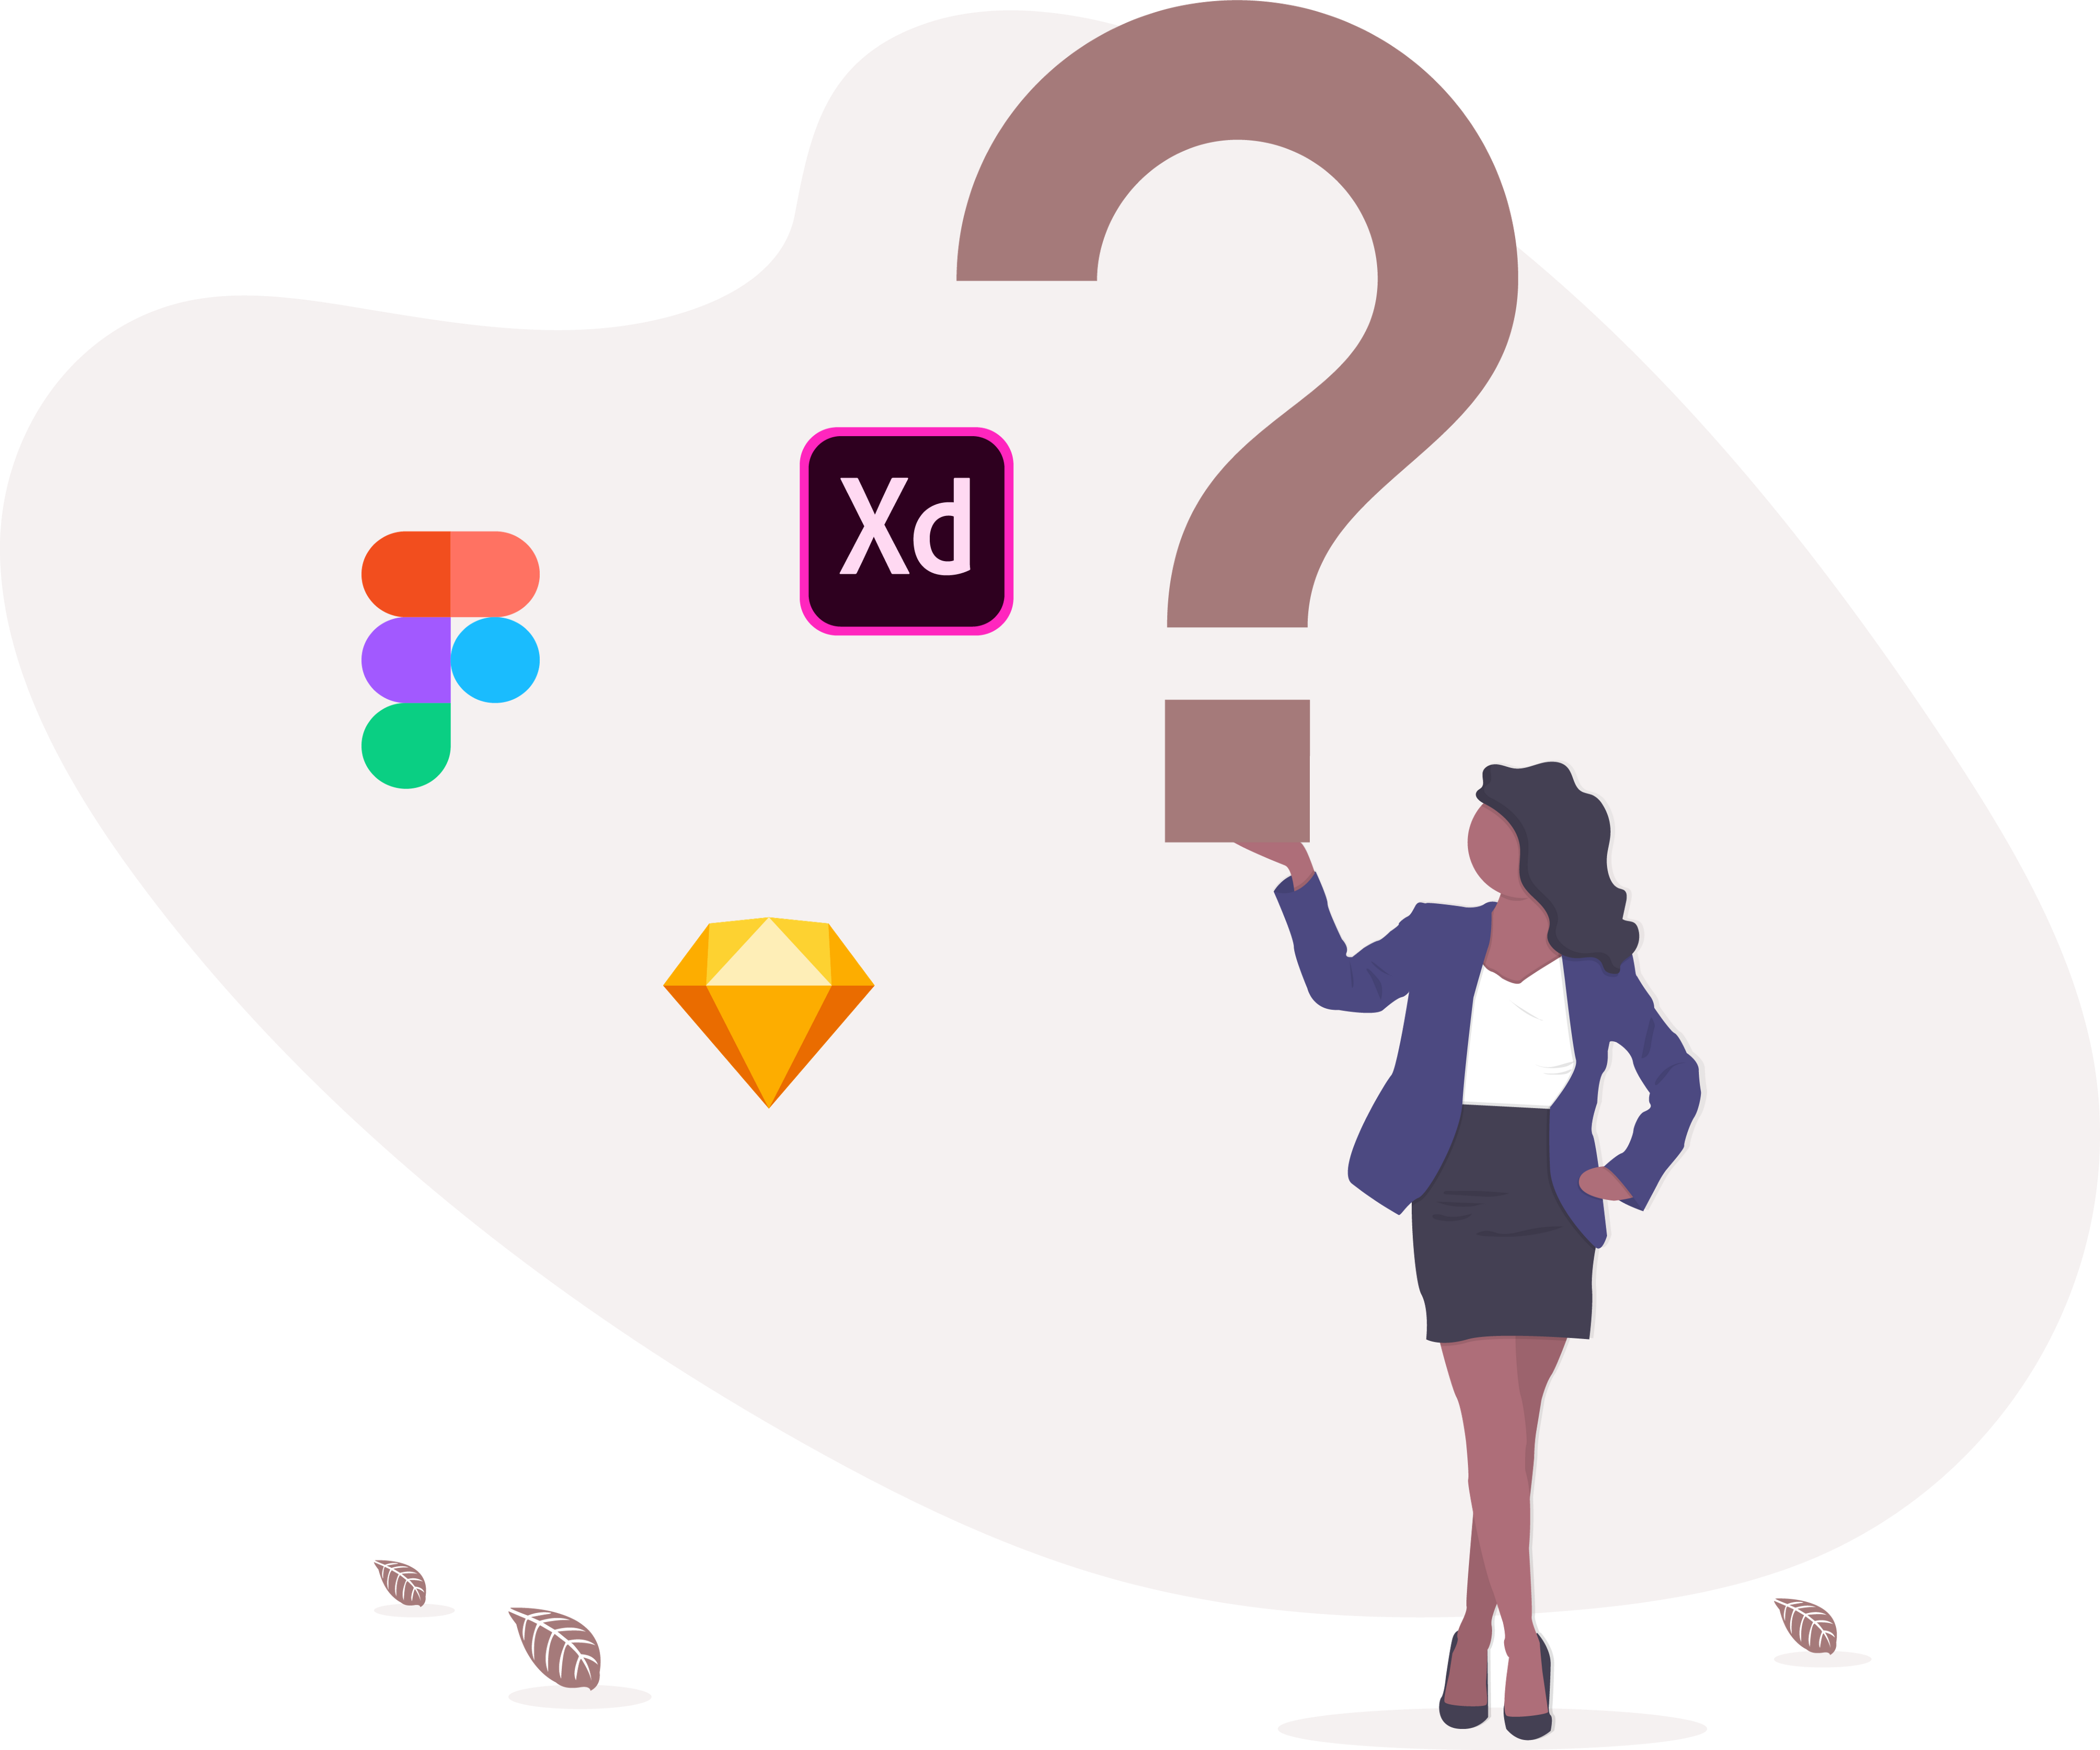 Sketch Vs Adobe Xd Vs Figma They Are All Great Softwares And I By Amanda Correa Medium